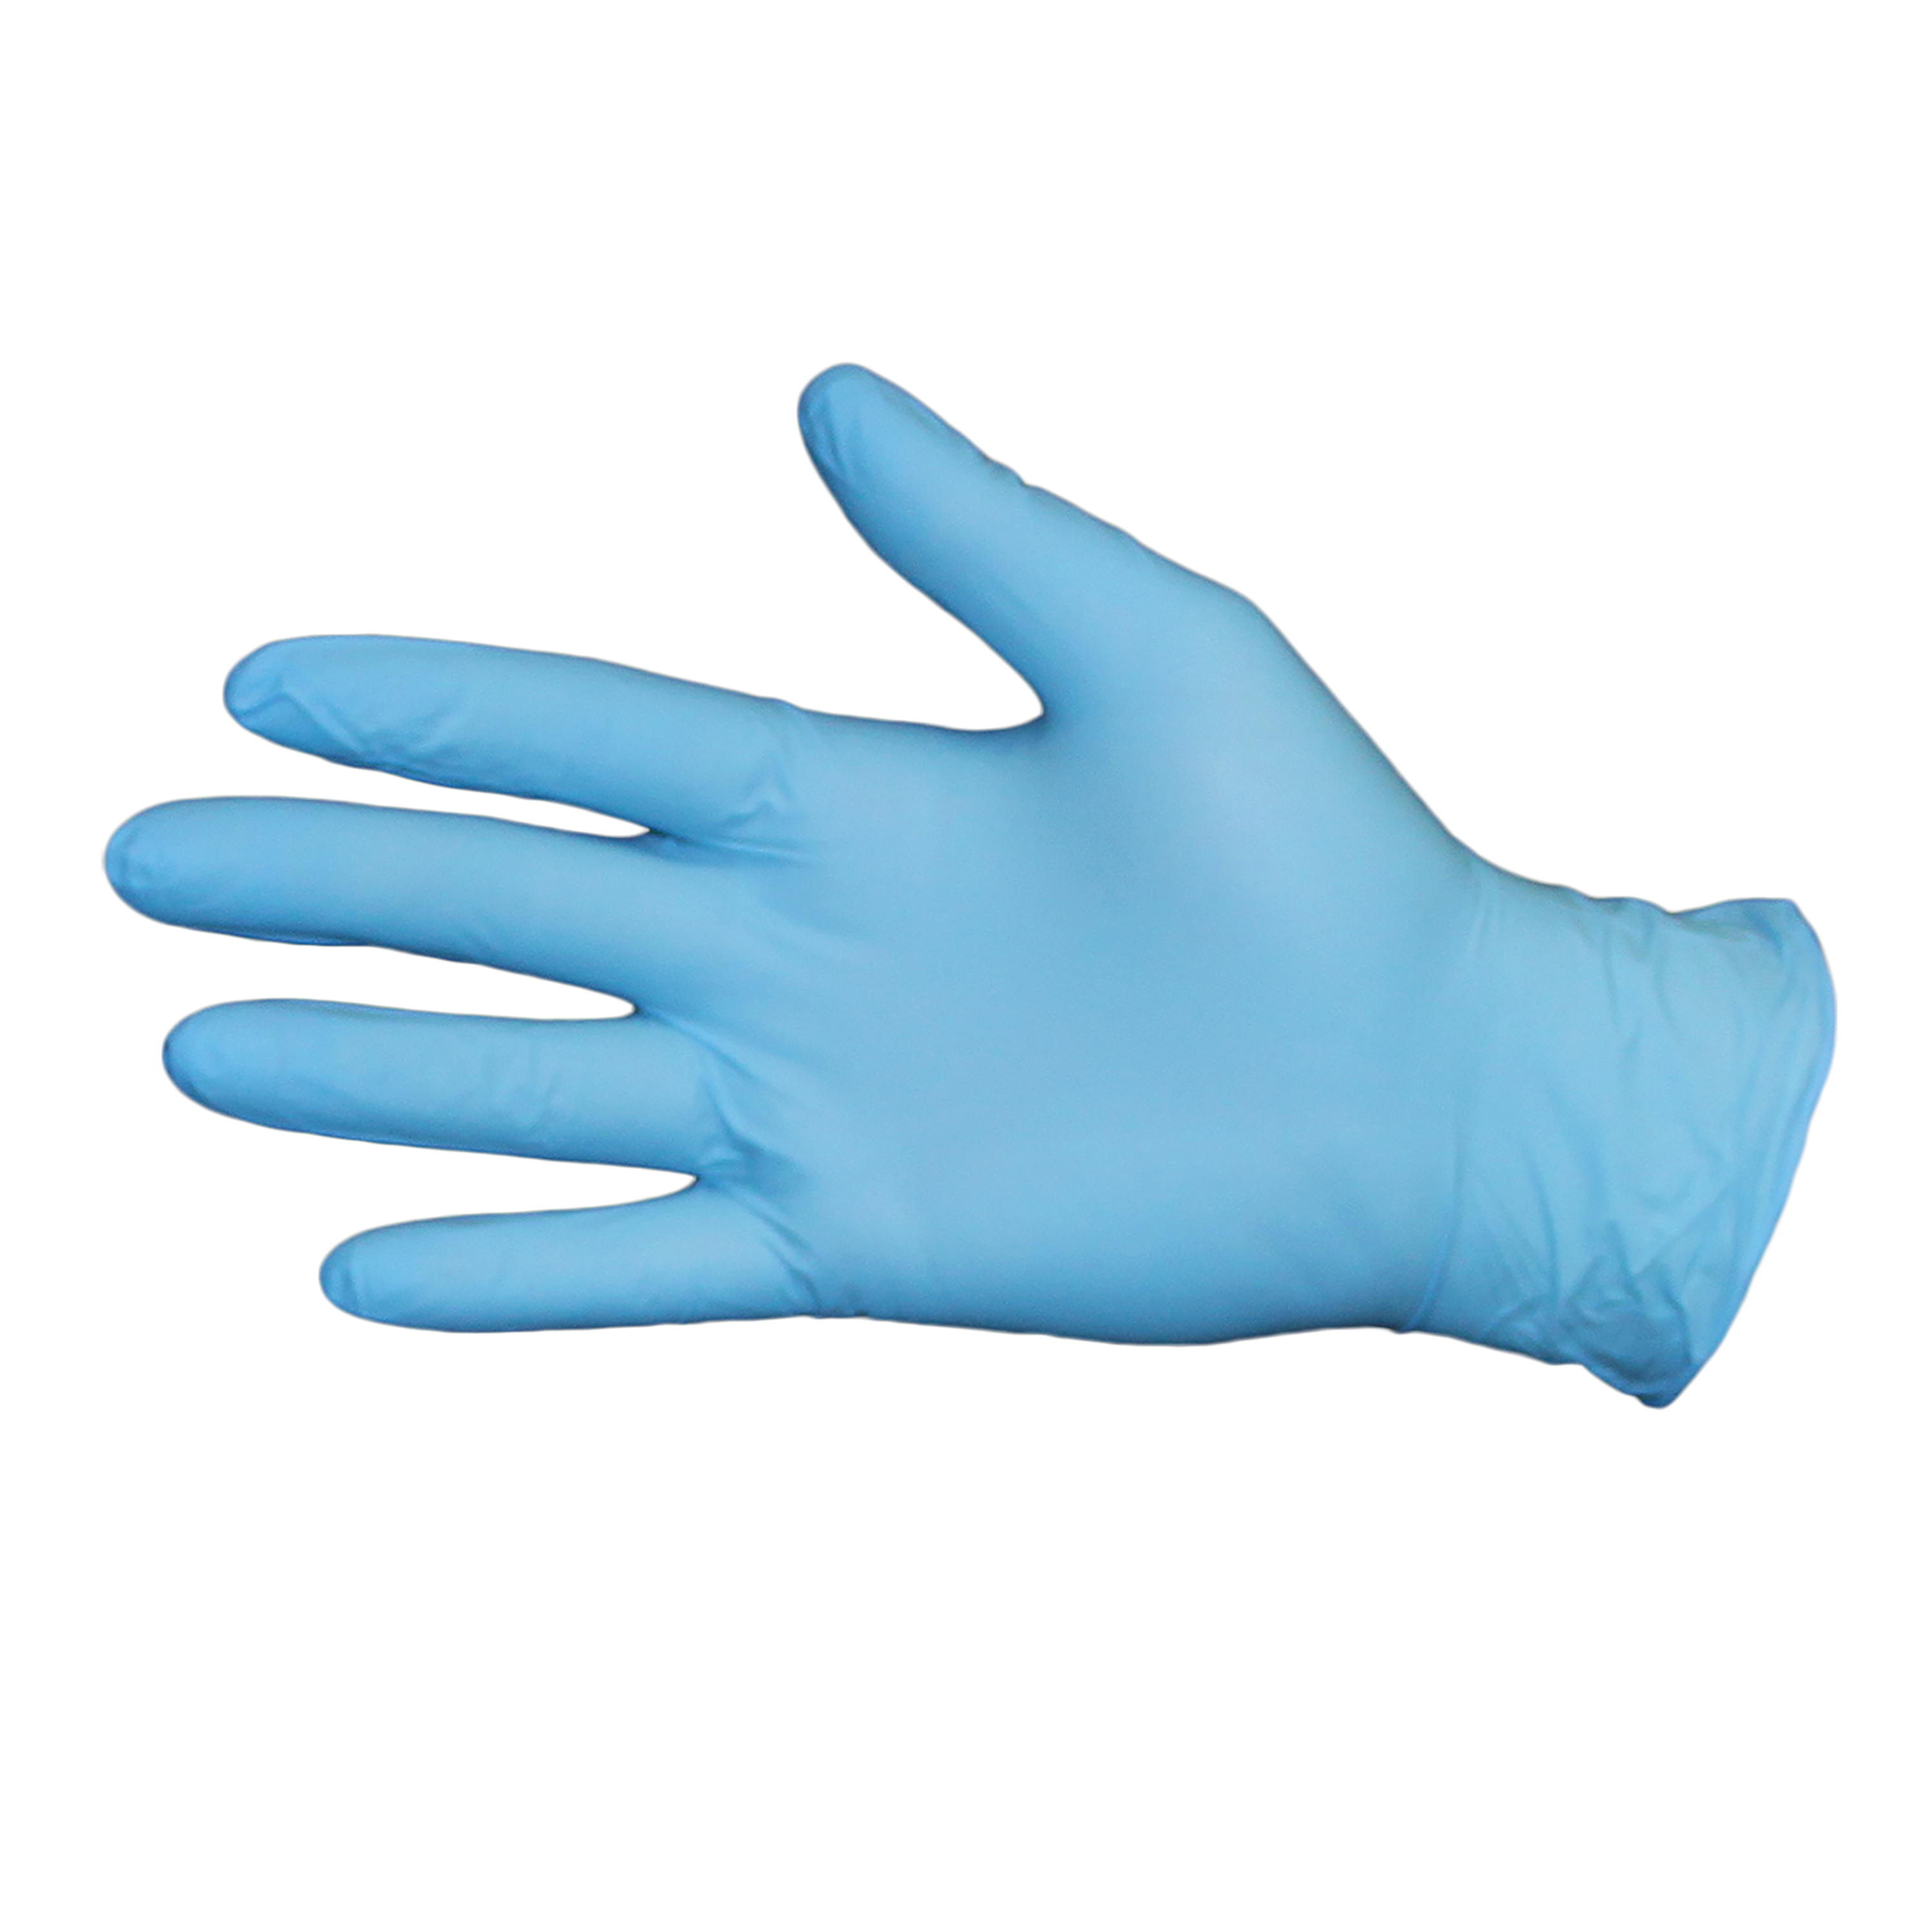 1550-090 Impact Products 8981L disposable gloves